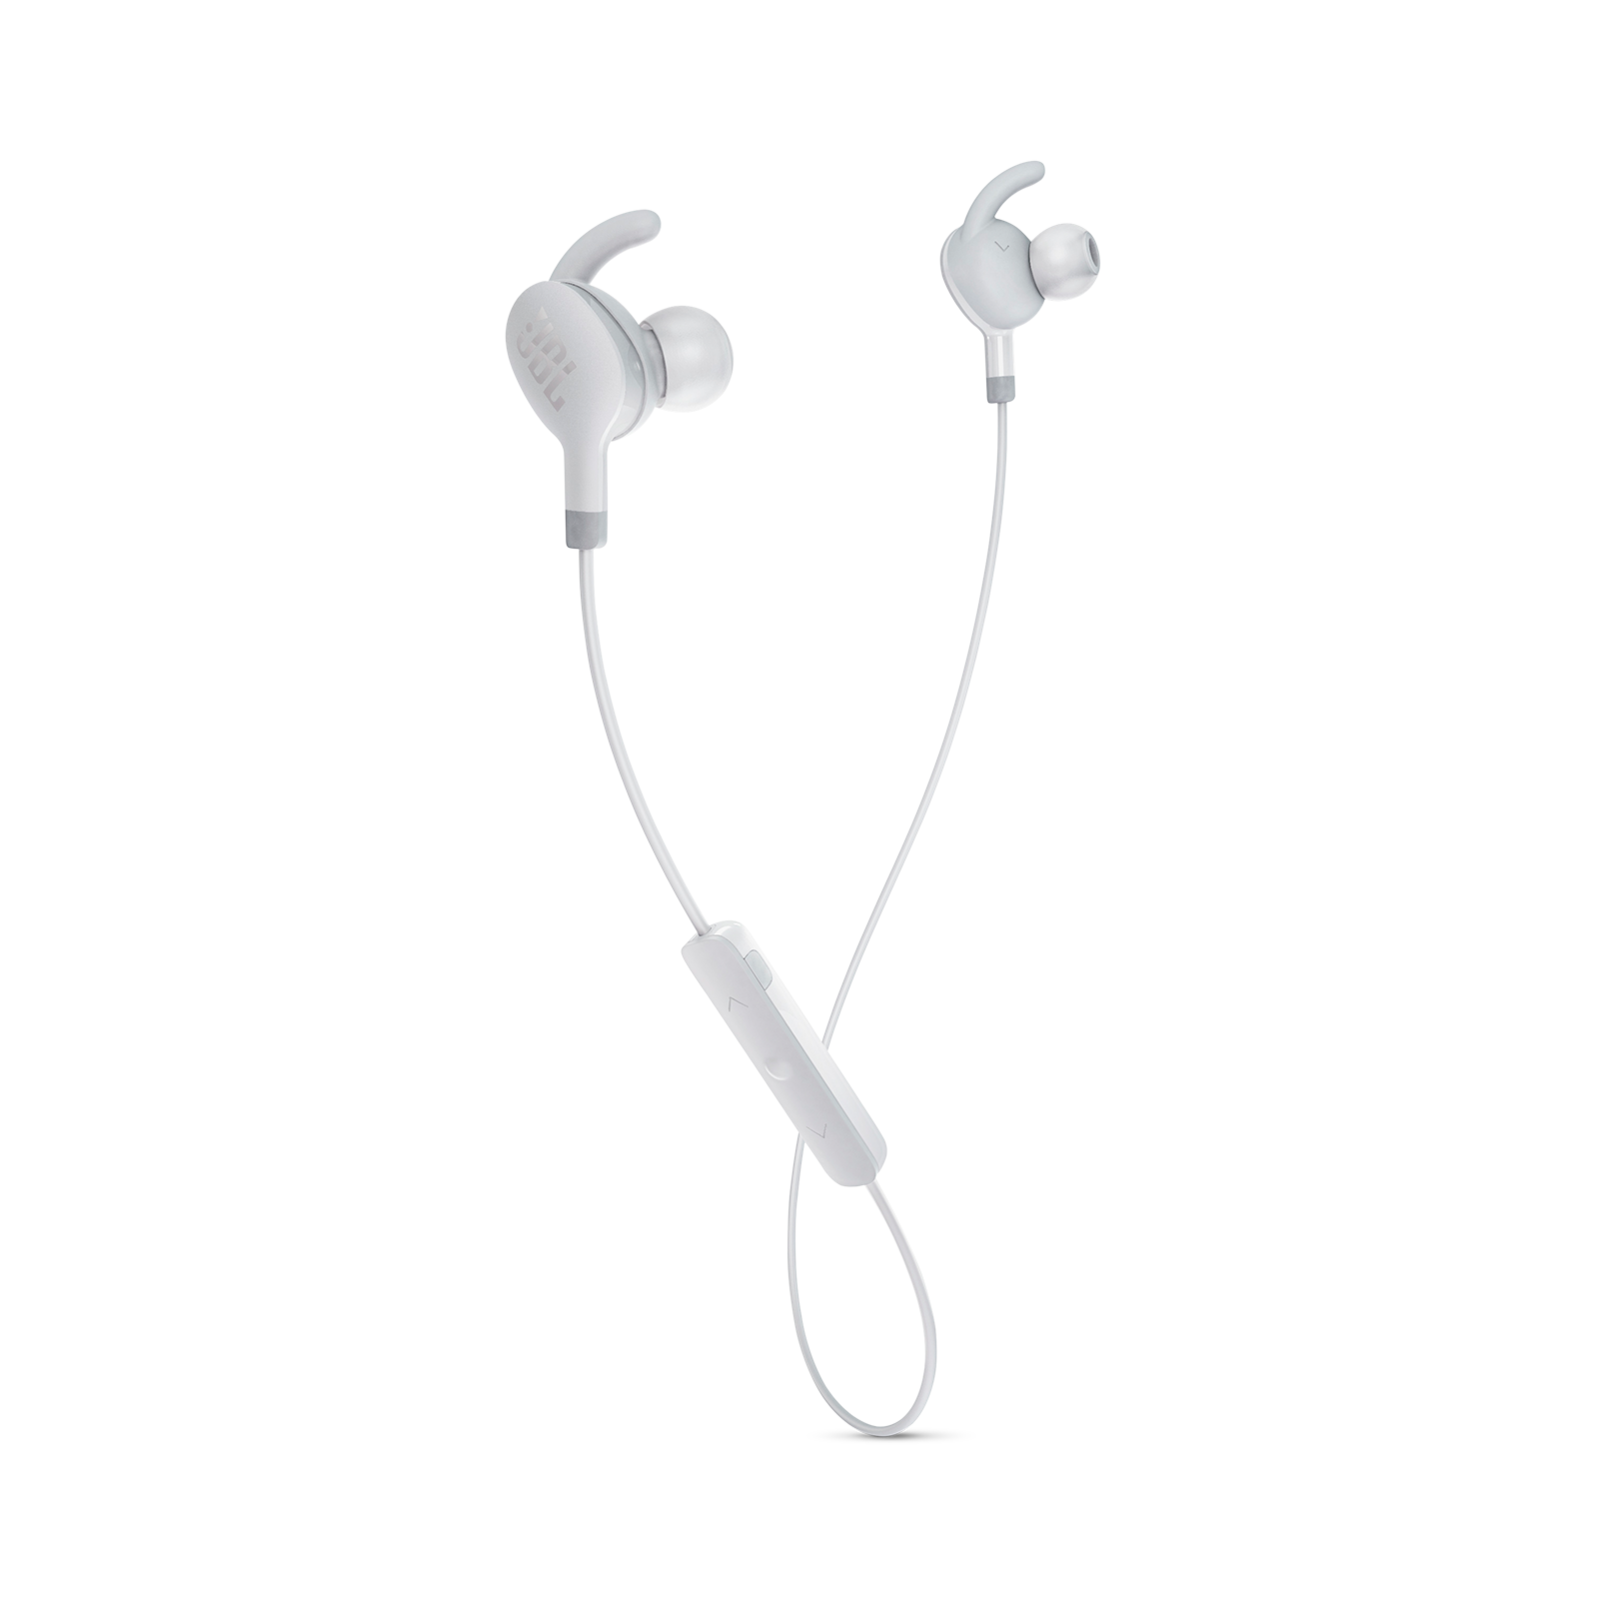 Jbl Everest 100 In Ear Wireless Headphones Universal Car Audio Wiring Connection